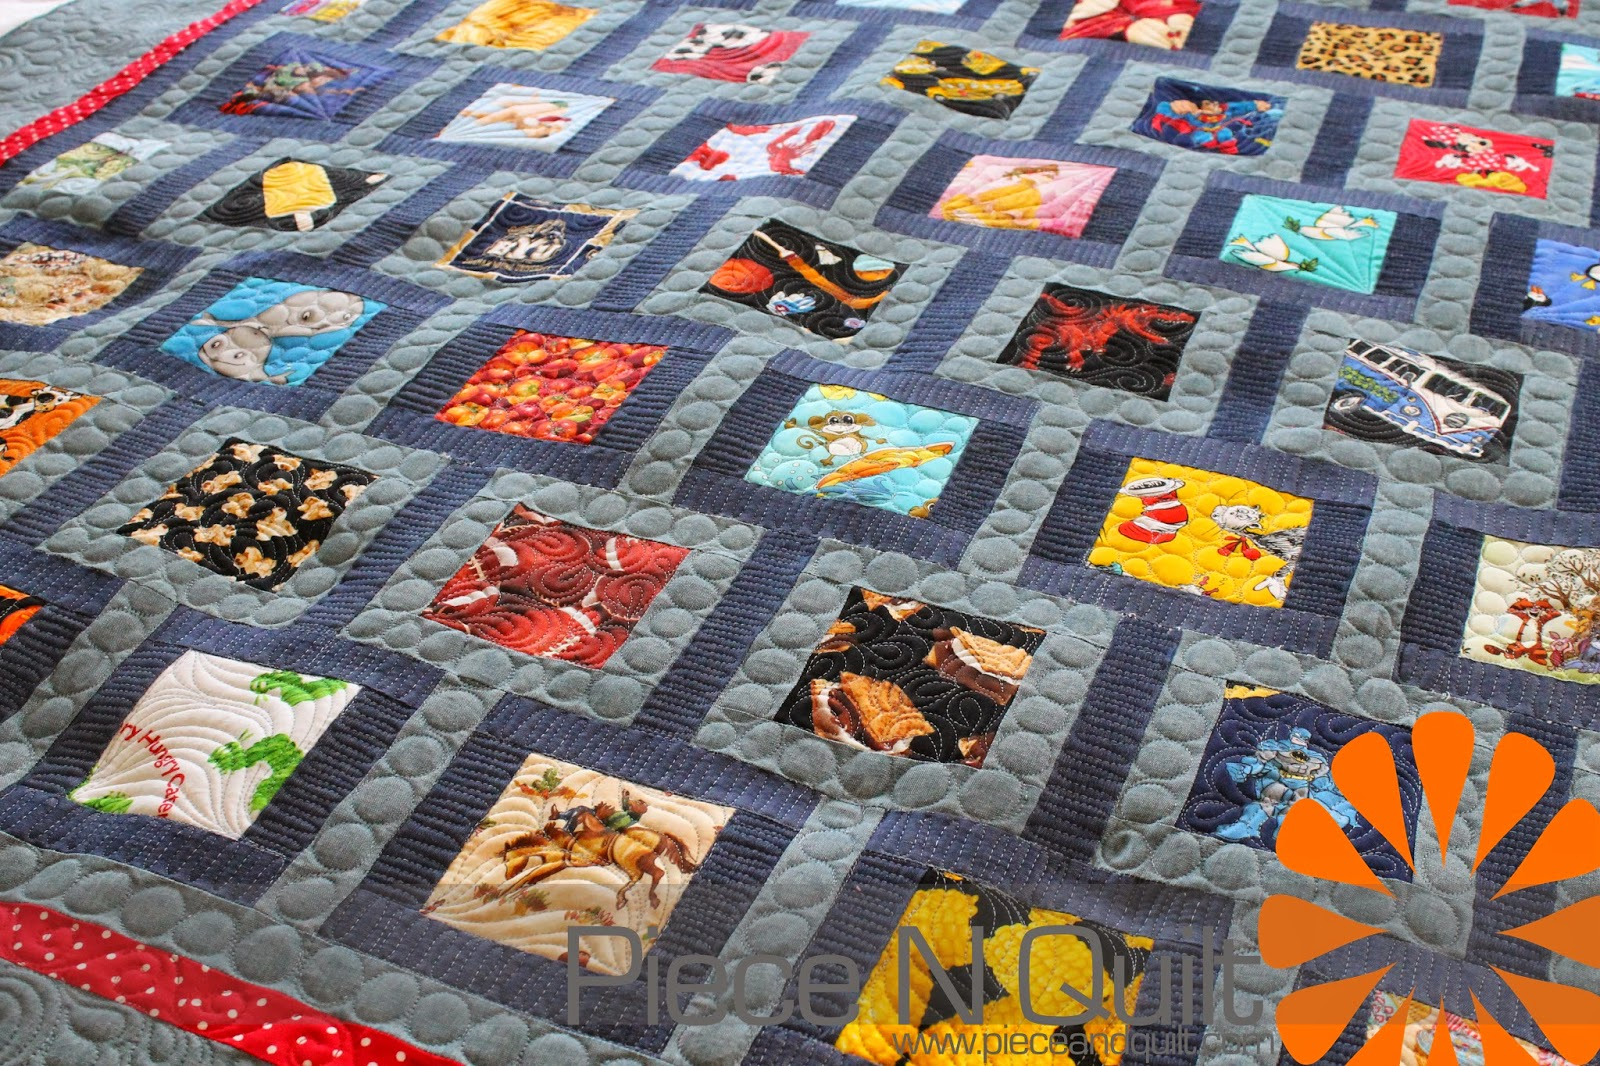 Eye Spy Quilt Piece N Quilt Bloglovin